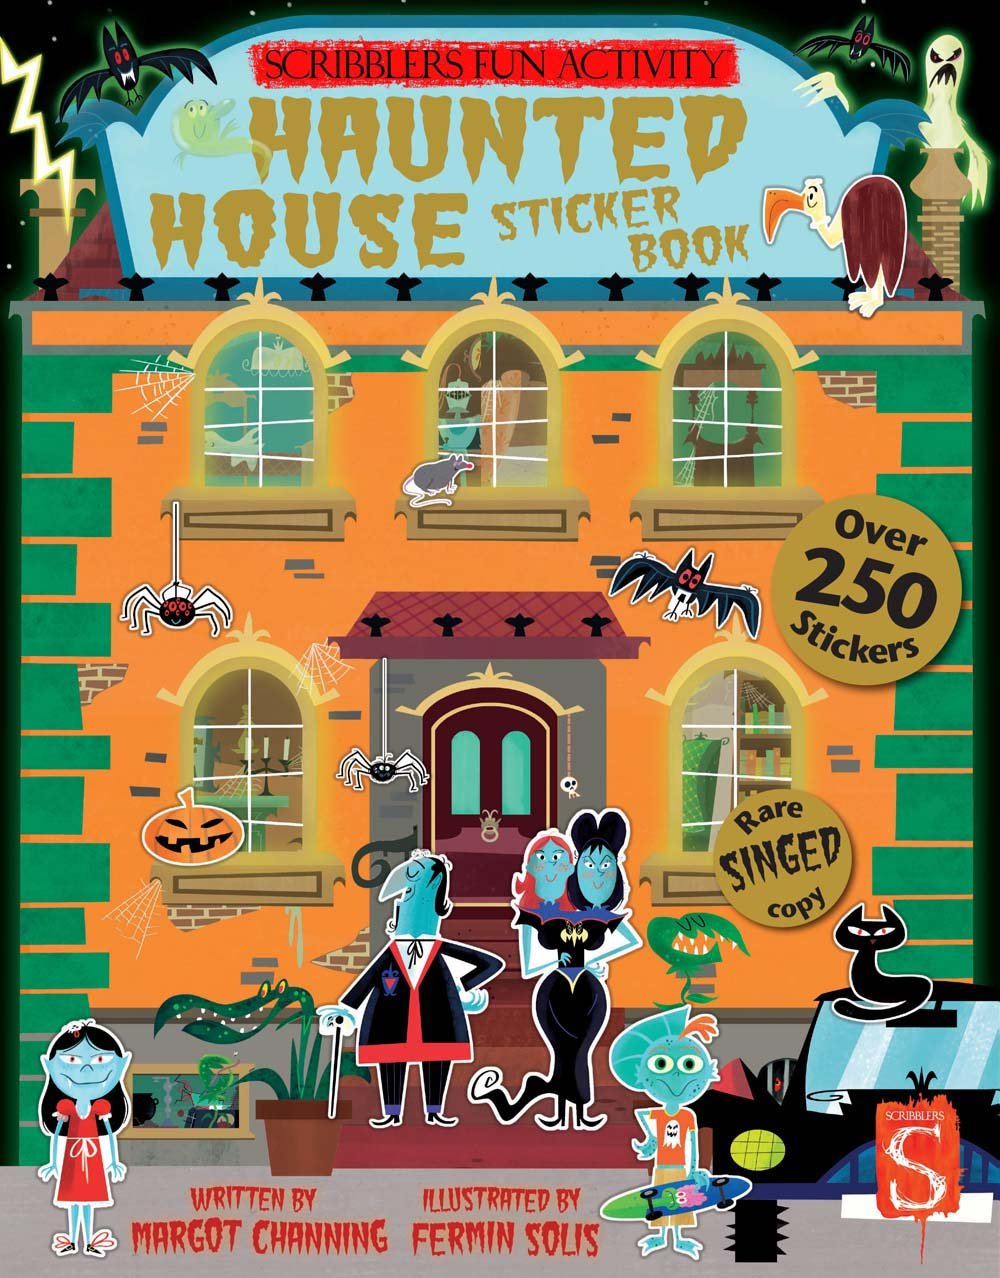 Haunted House Sticker Book (Scribblers Fun Activity)